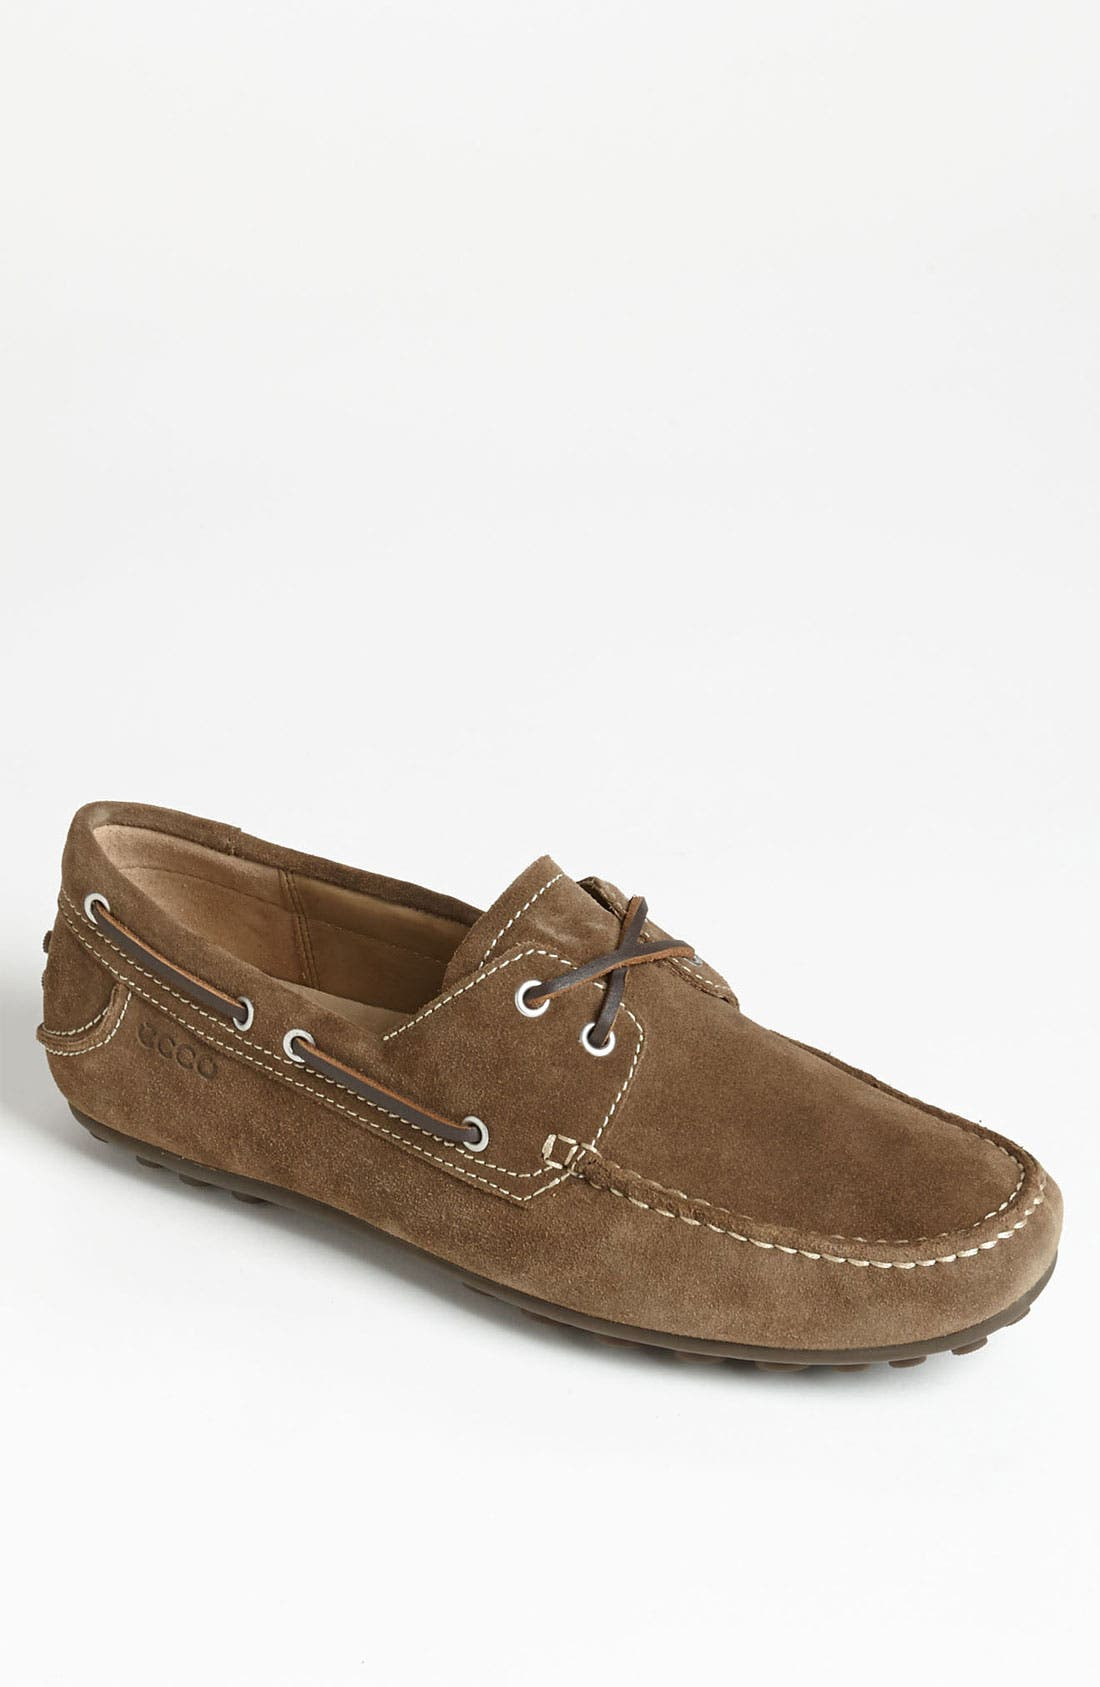 Alternate Image 1 Selected - ECCO 'Cuno' Driving Shoe